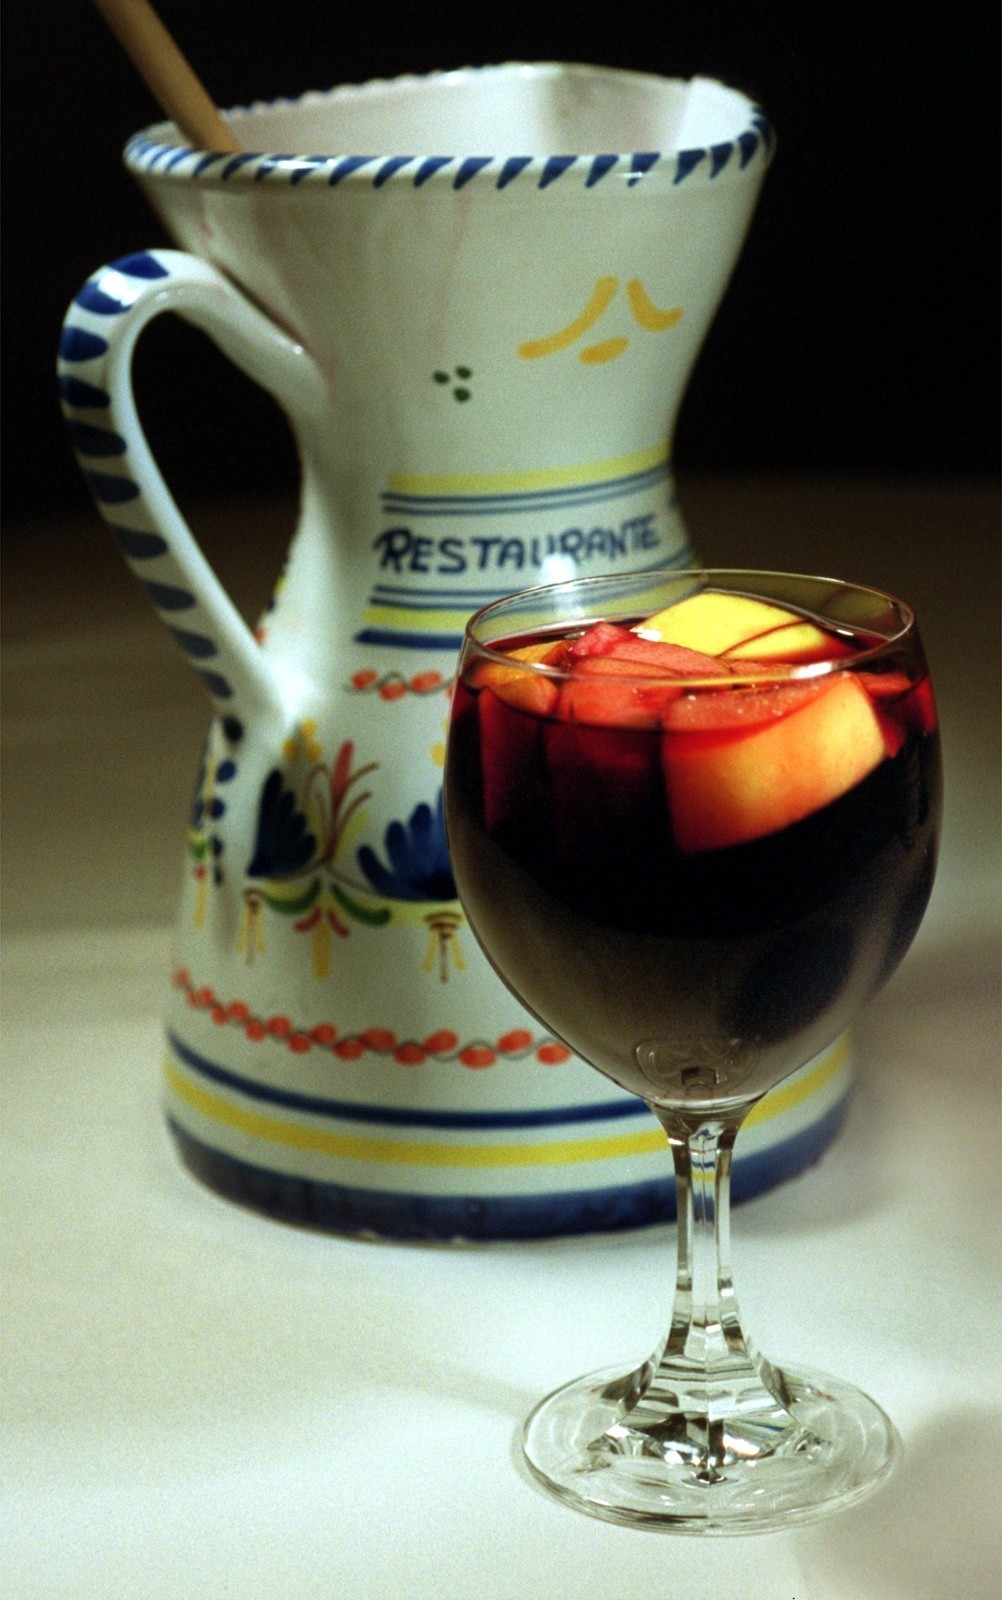 50 things Baltimore foodies must try [Pictures] - Order a Tio Pepe sangria (red). It contains fruit, so it counts as food!